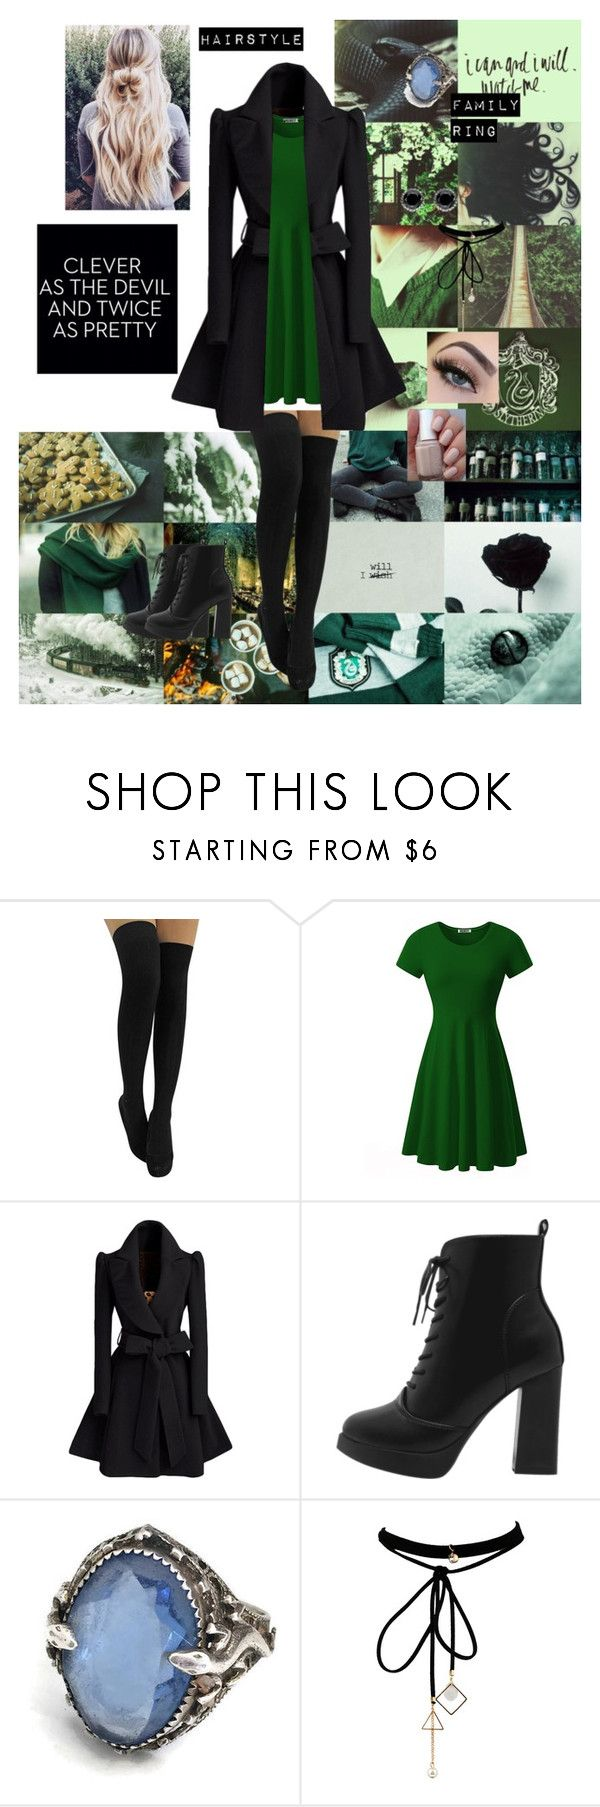 A Slytherin Going Out by rose-reaper on Polyvore featuring WithChic and Thomas Sabo